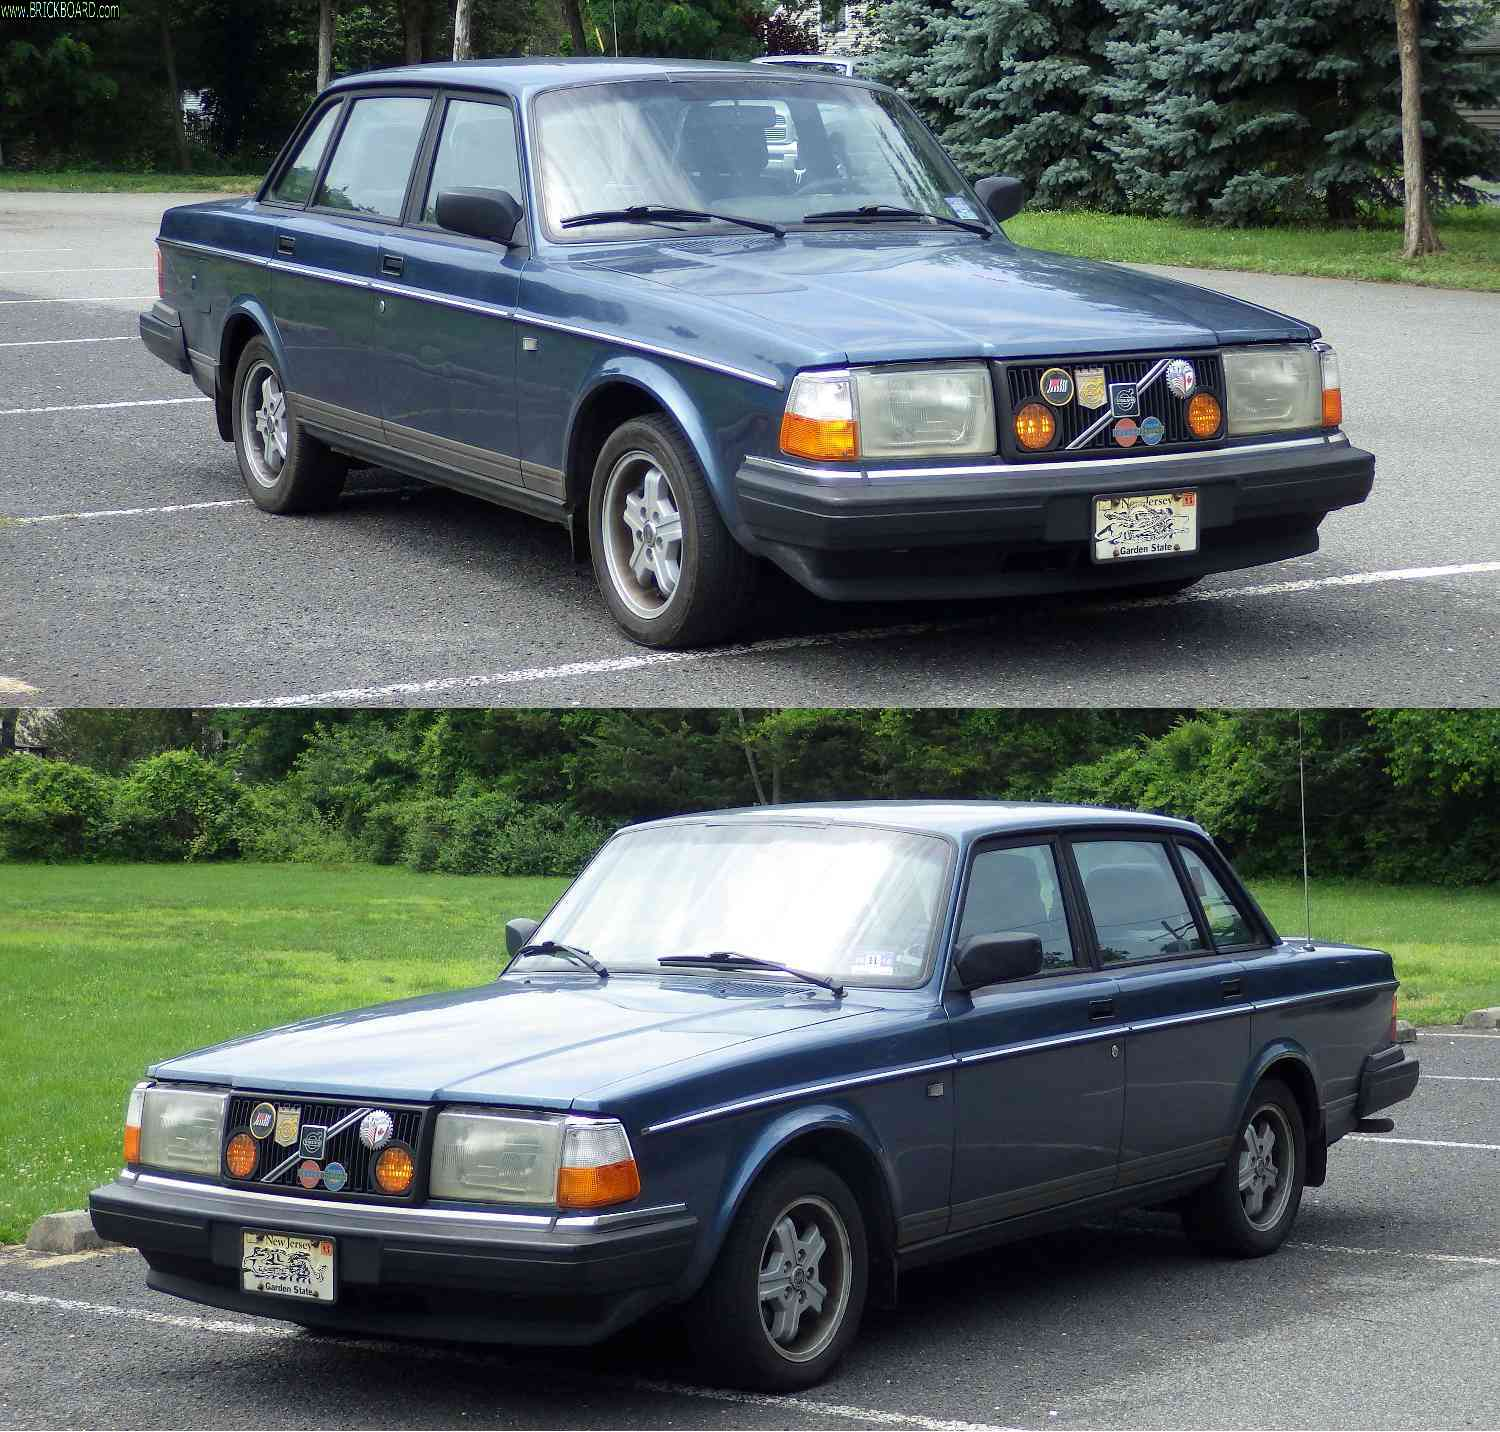 Volvo 200 -- My car